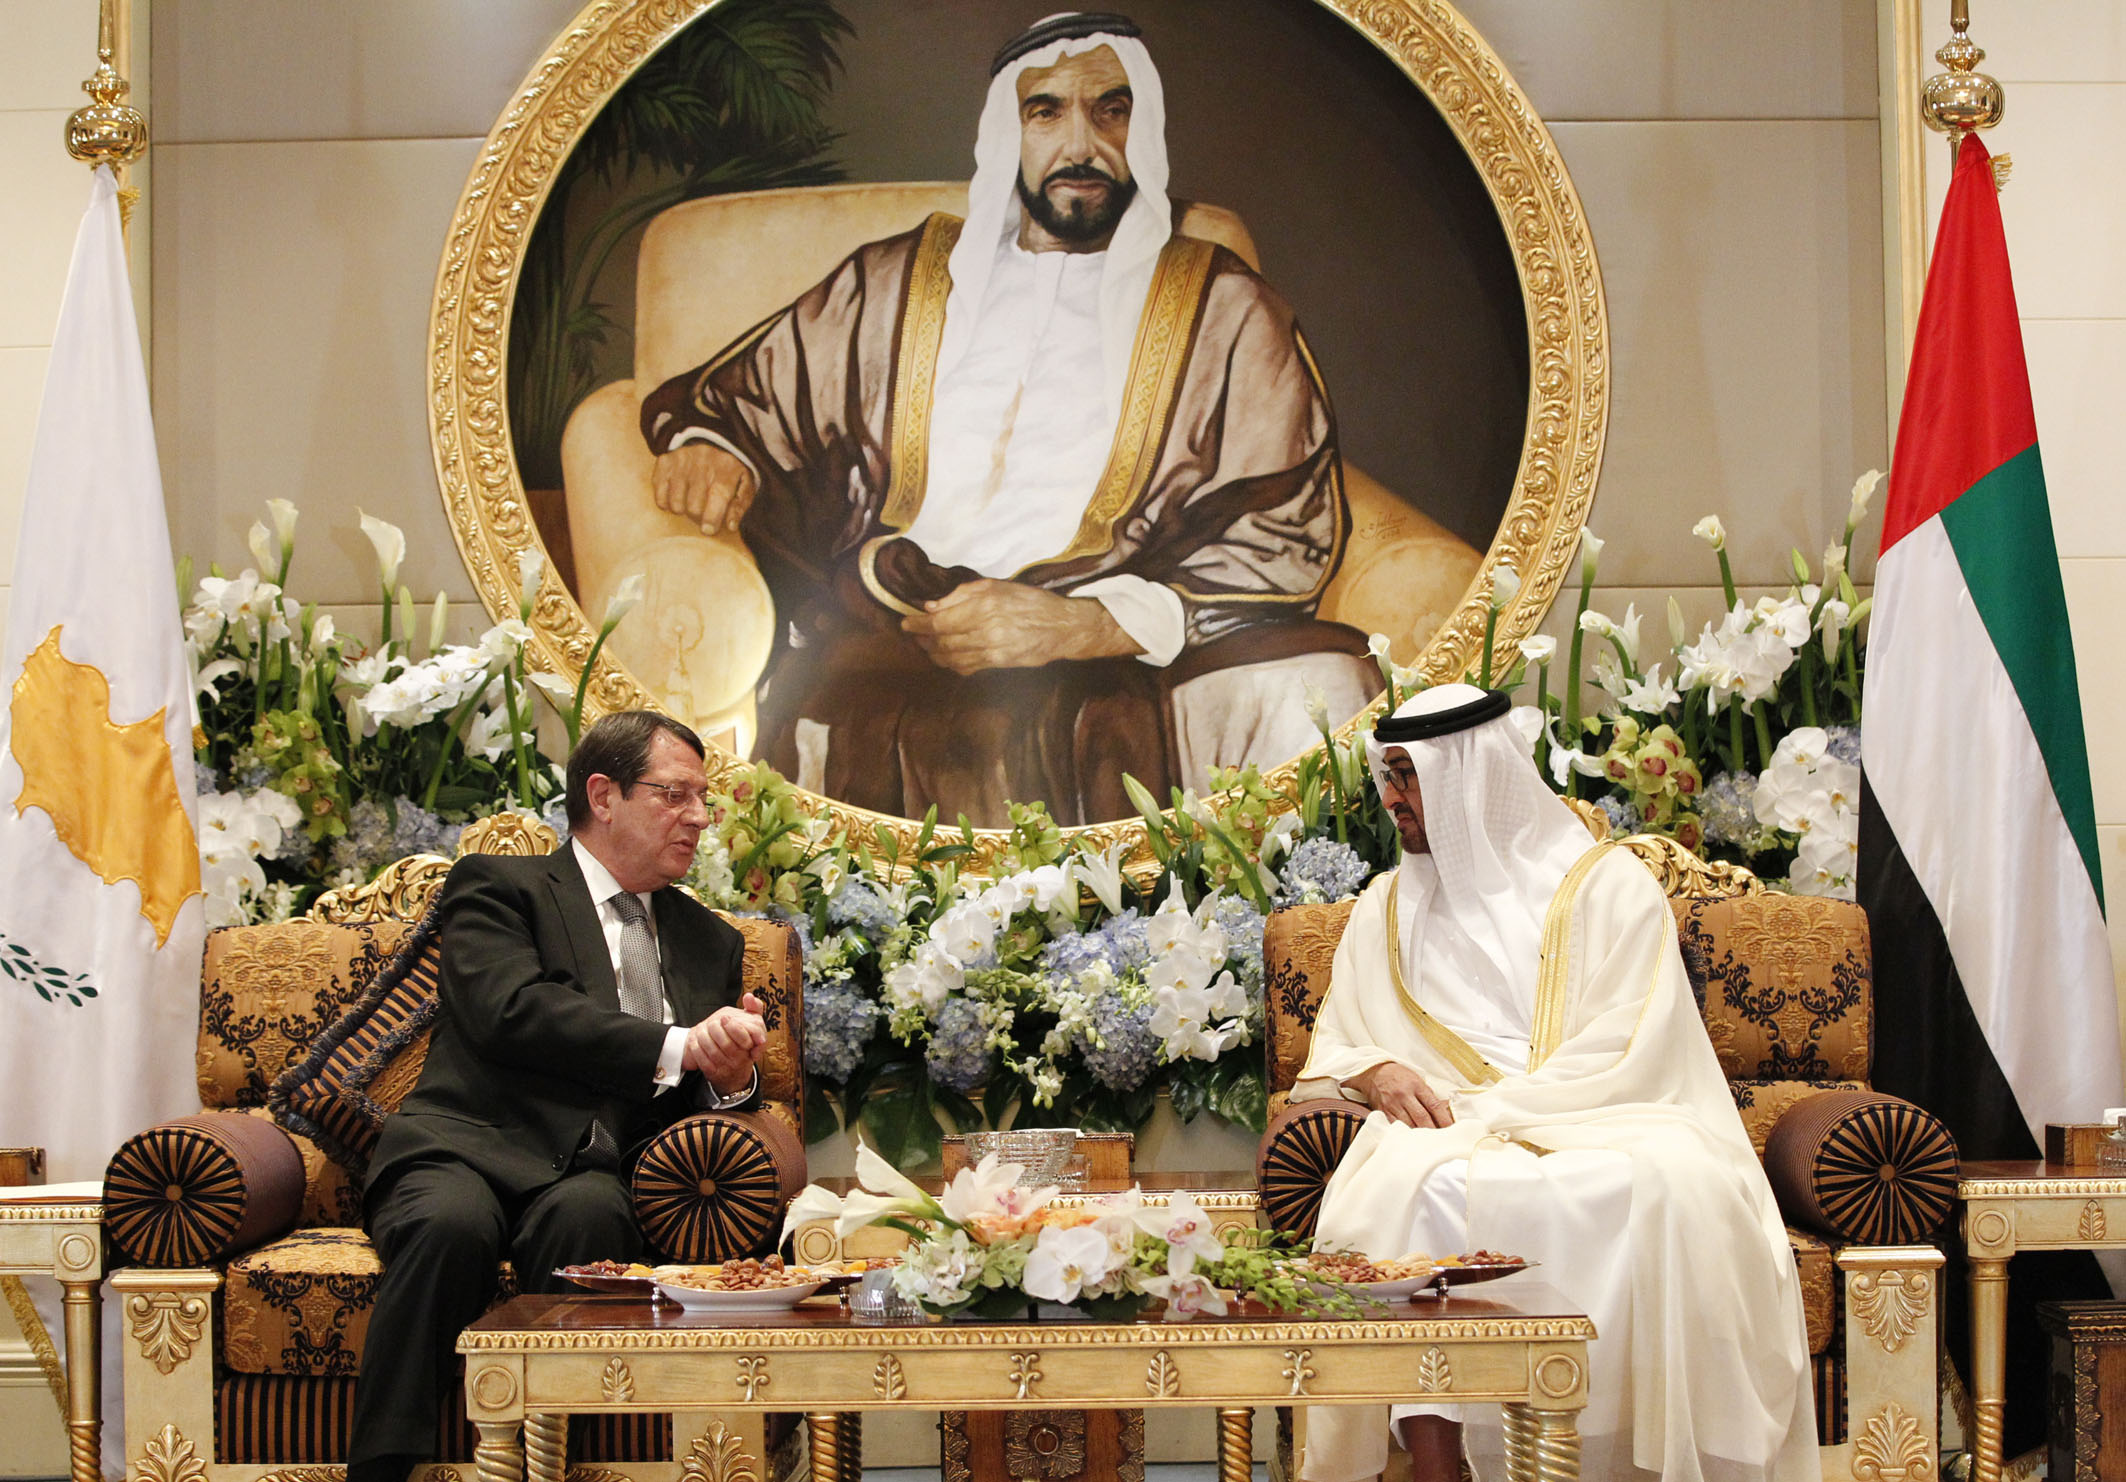 Anastasiades returns from UAE with hopes for investments